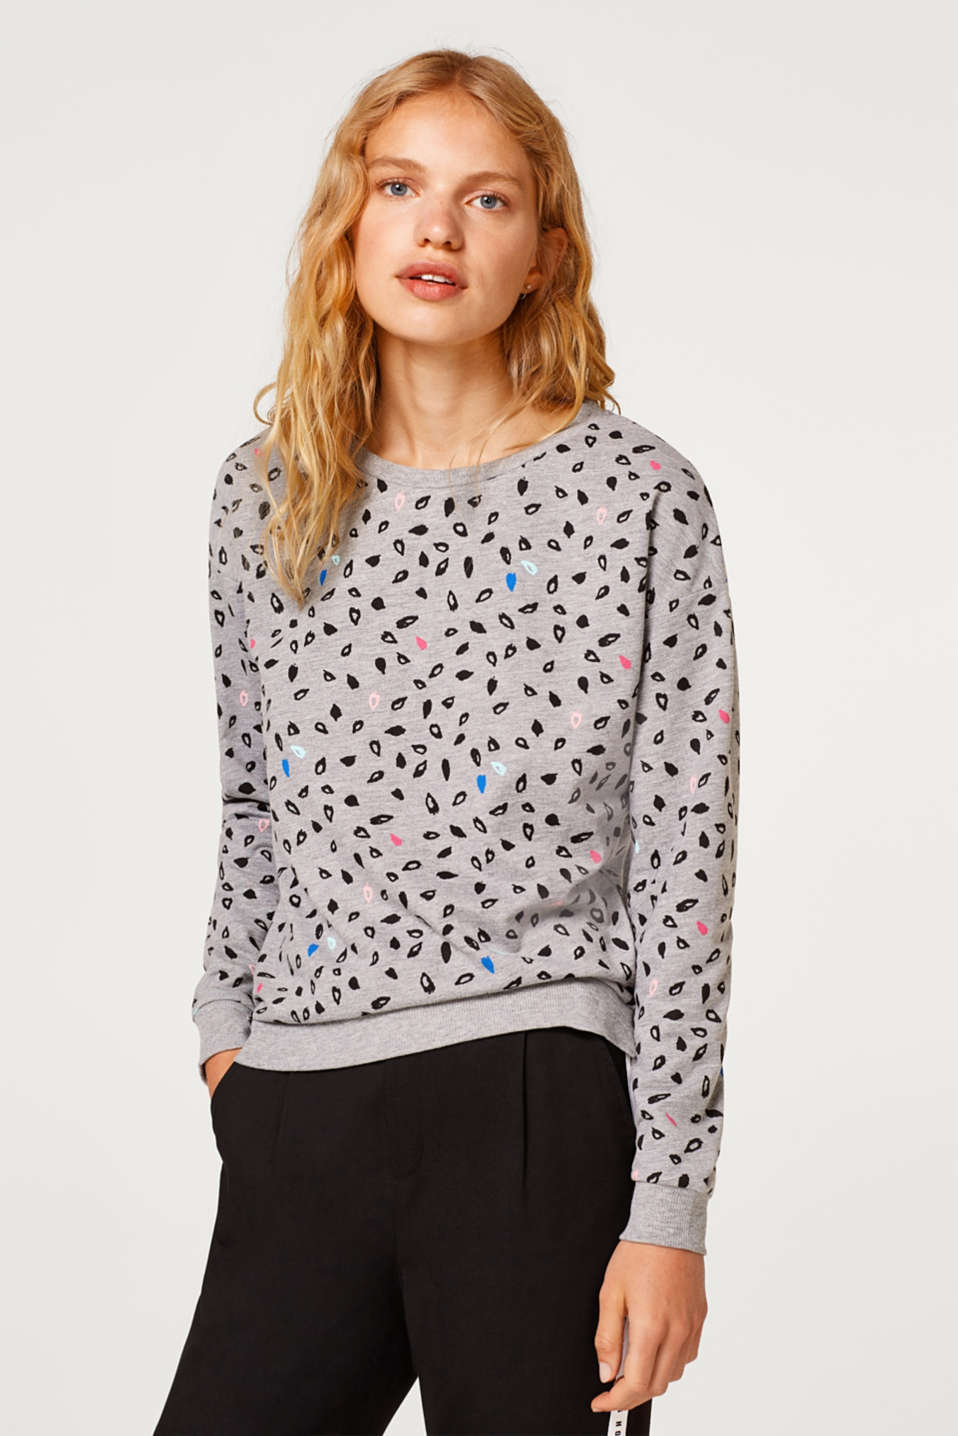 edc - Sweatshirt with a print and cotton